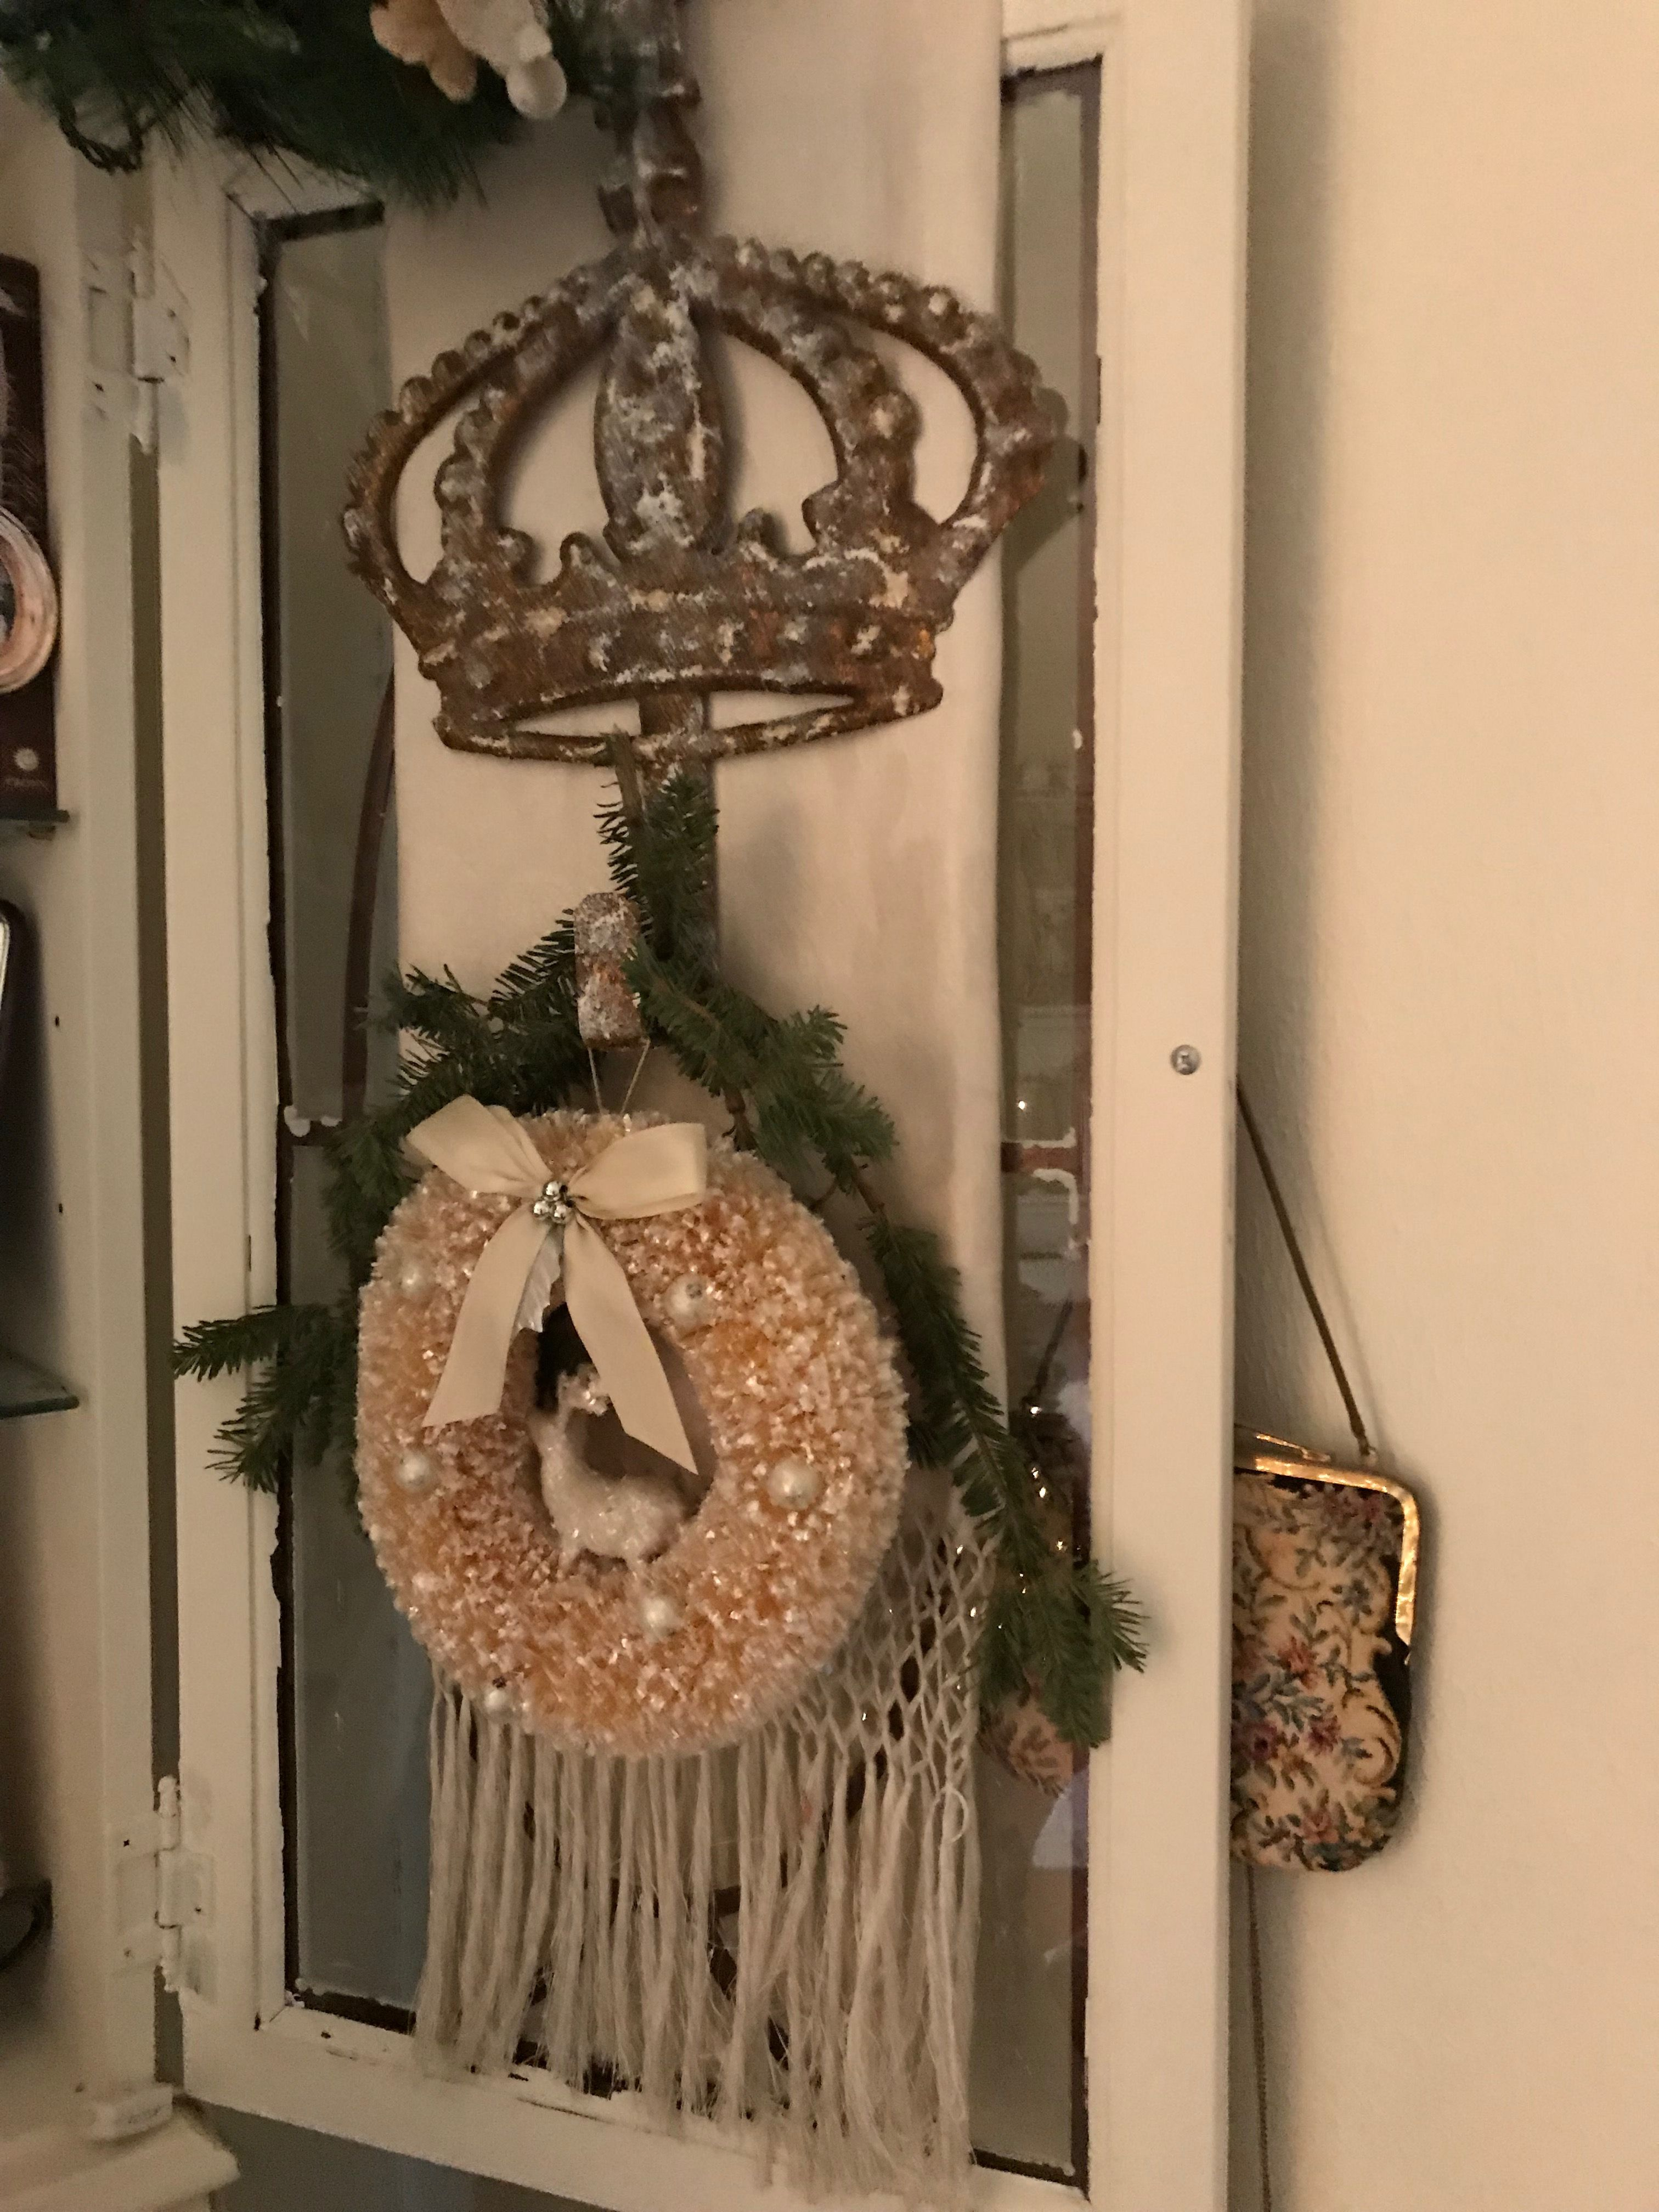 Pin by Paula Young on Christmas 2017   Wall lights, Candle ... on Decorative Wall Sconces Candle Holders Centerpieces Ebay id=37897